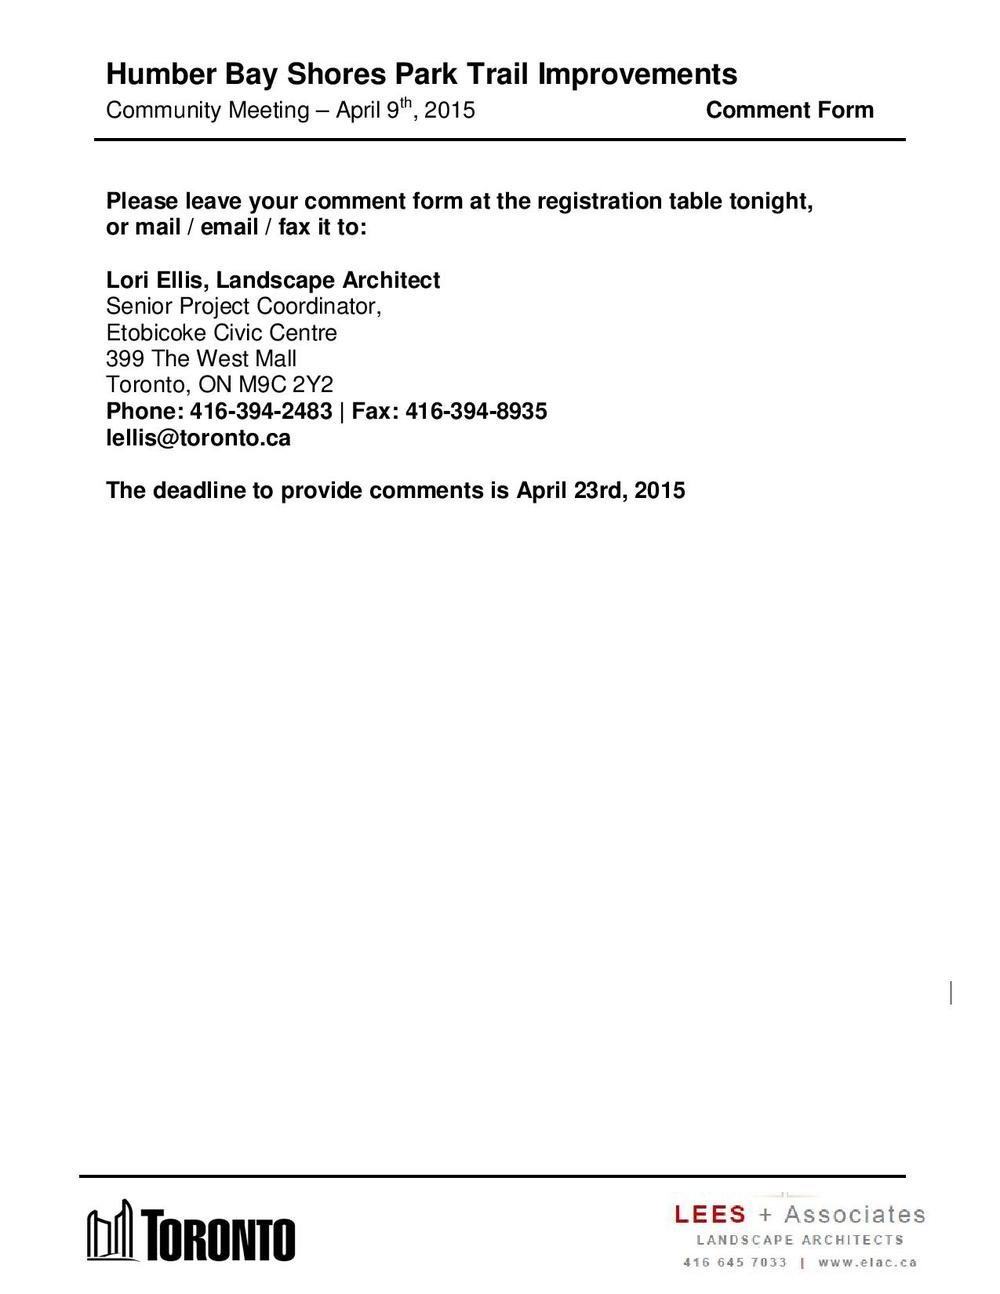 Humber Bay Shores Park -Comment Sheet-April 9th 2015-page-002.jpg